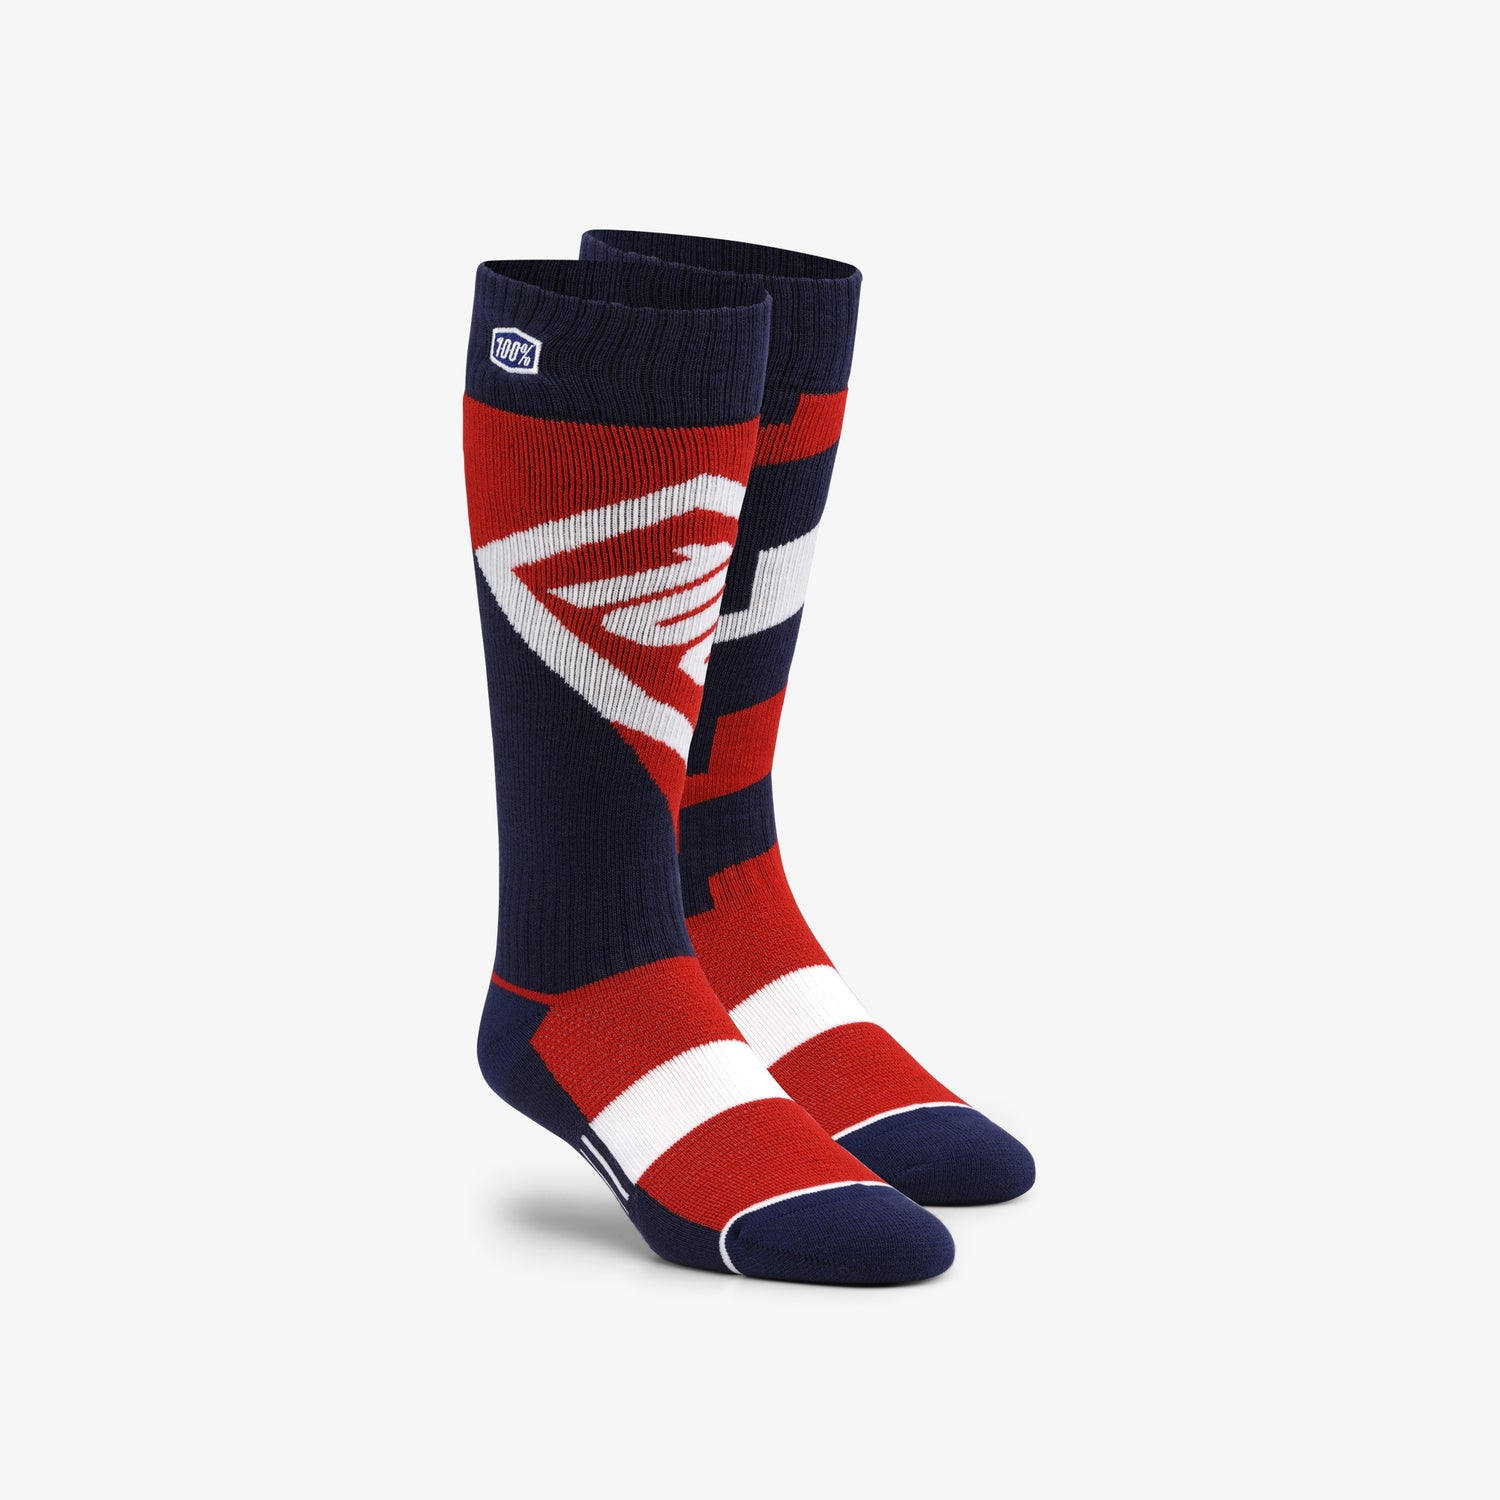 TORQUE Comfort Moto Socks - Red